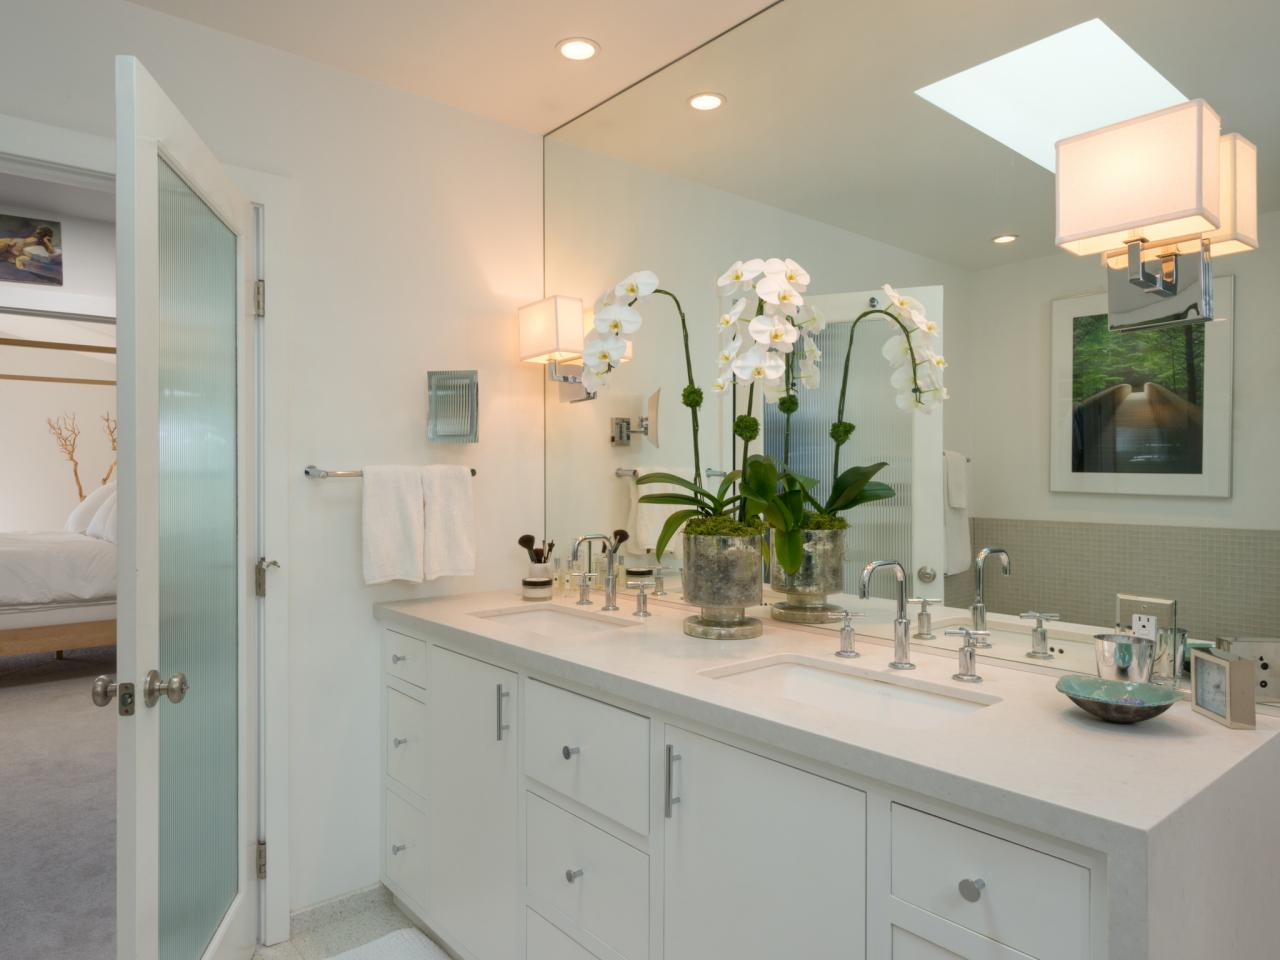 Vanity Lighting HGTV - Modern bathroom vanity lighting